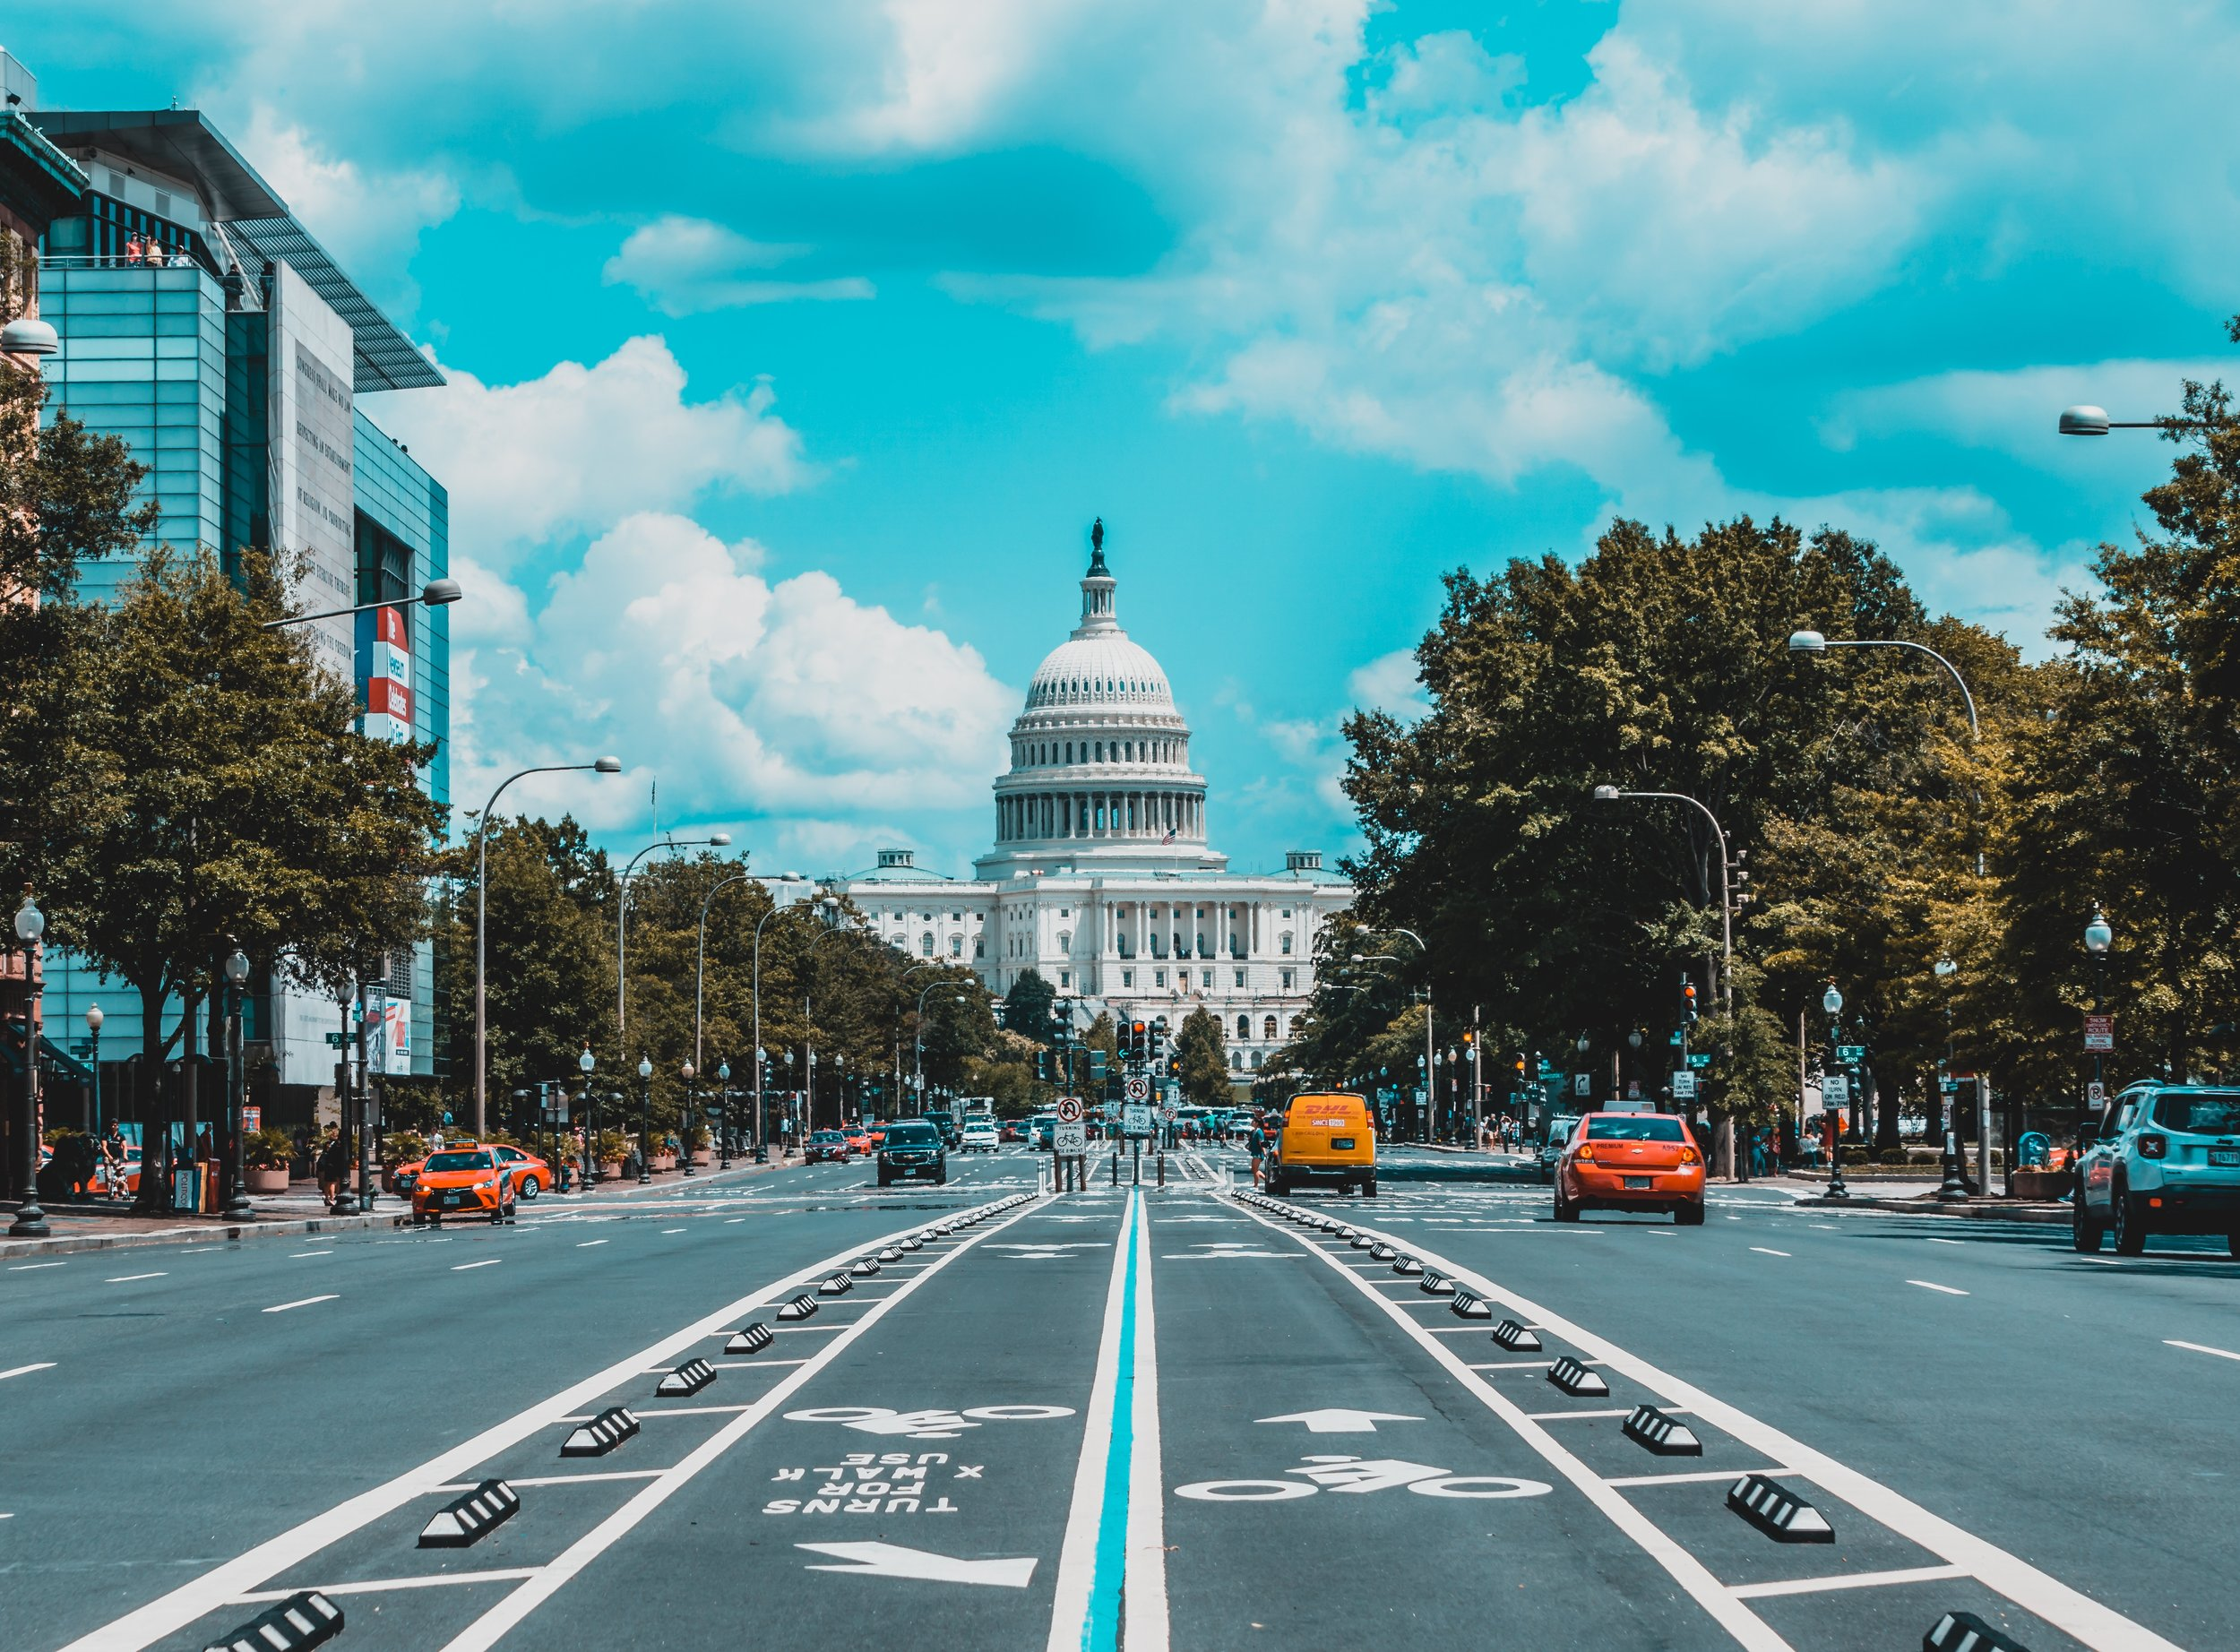 Washington DC has emerged as an innovative remote worker hub, and the desire for coworking spaces has grown accordingly.